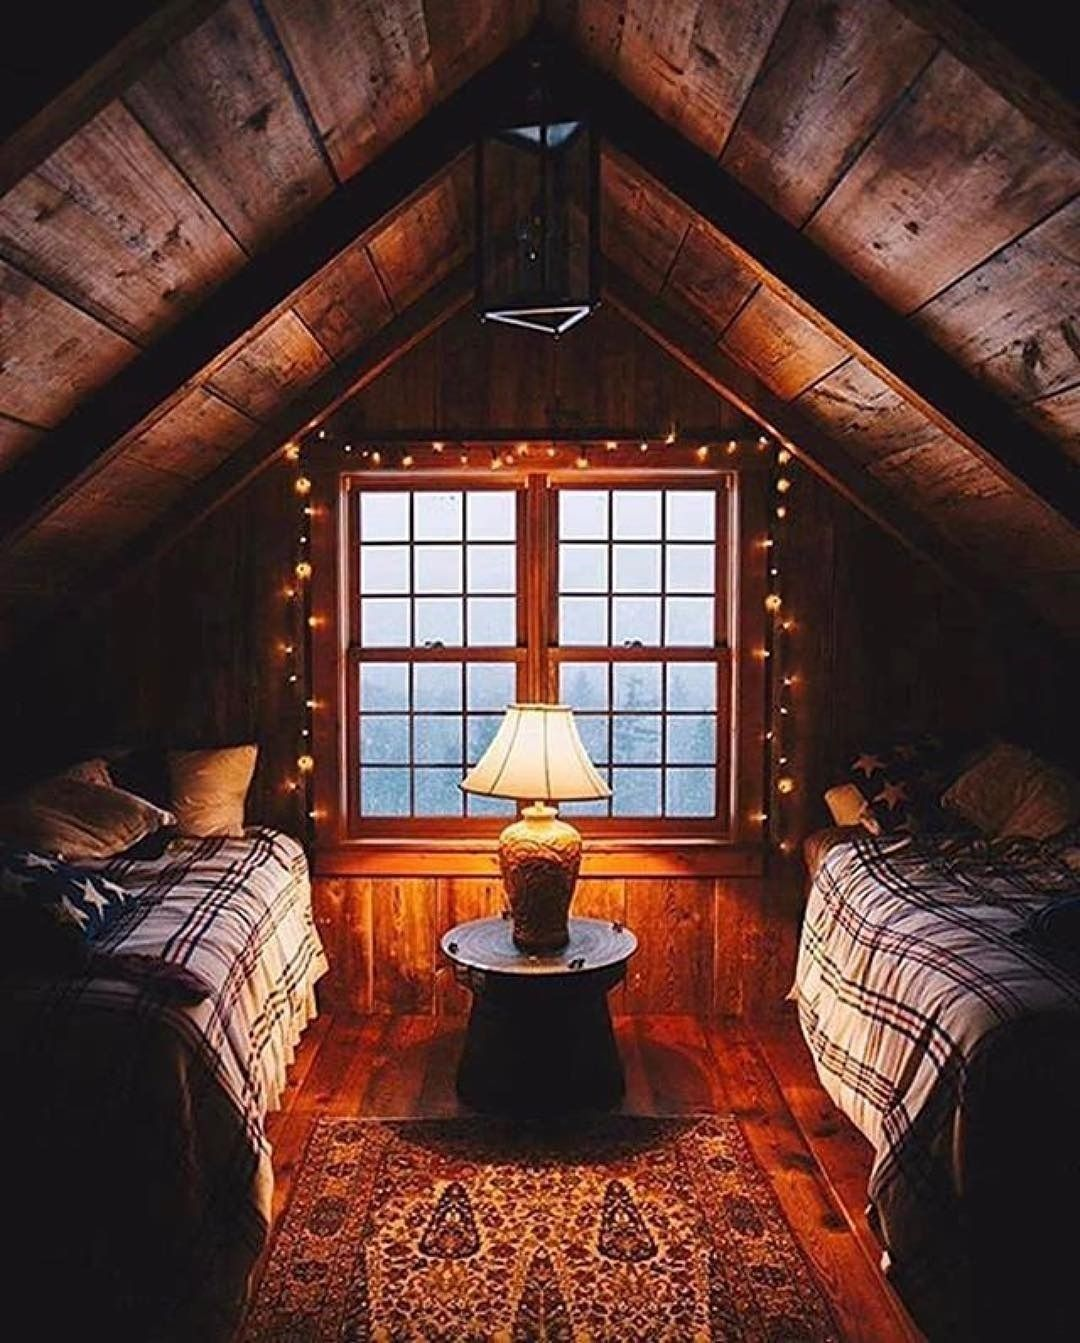 rustic bedroom daily interior design inspiration | Living the Rustic Carefree Lifestyle Enjoy our Inspiration ...